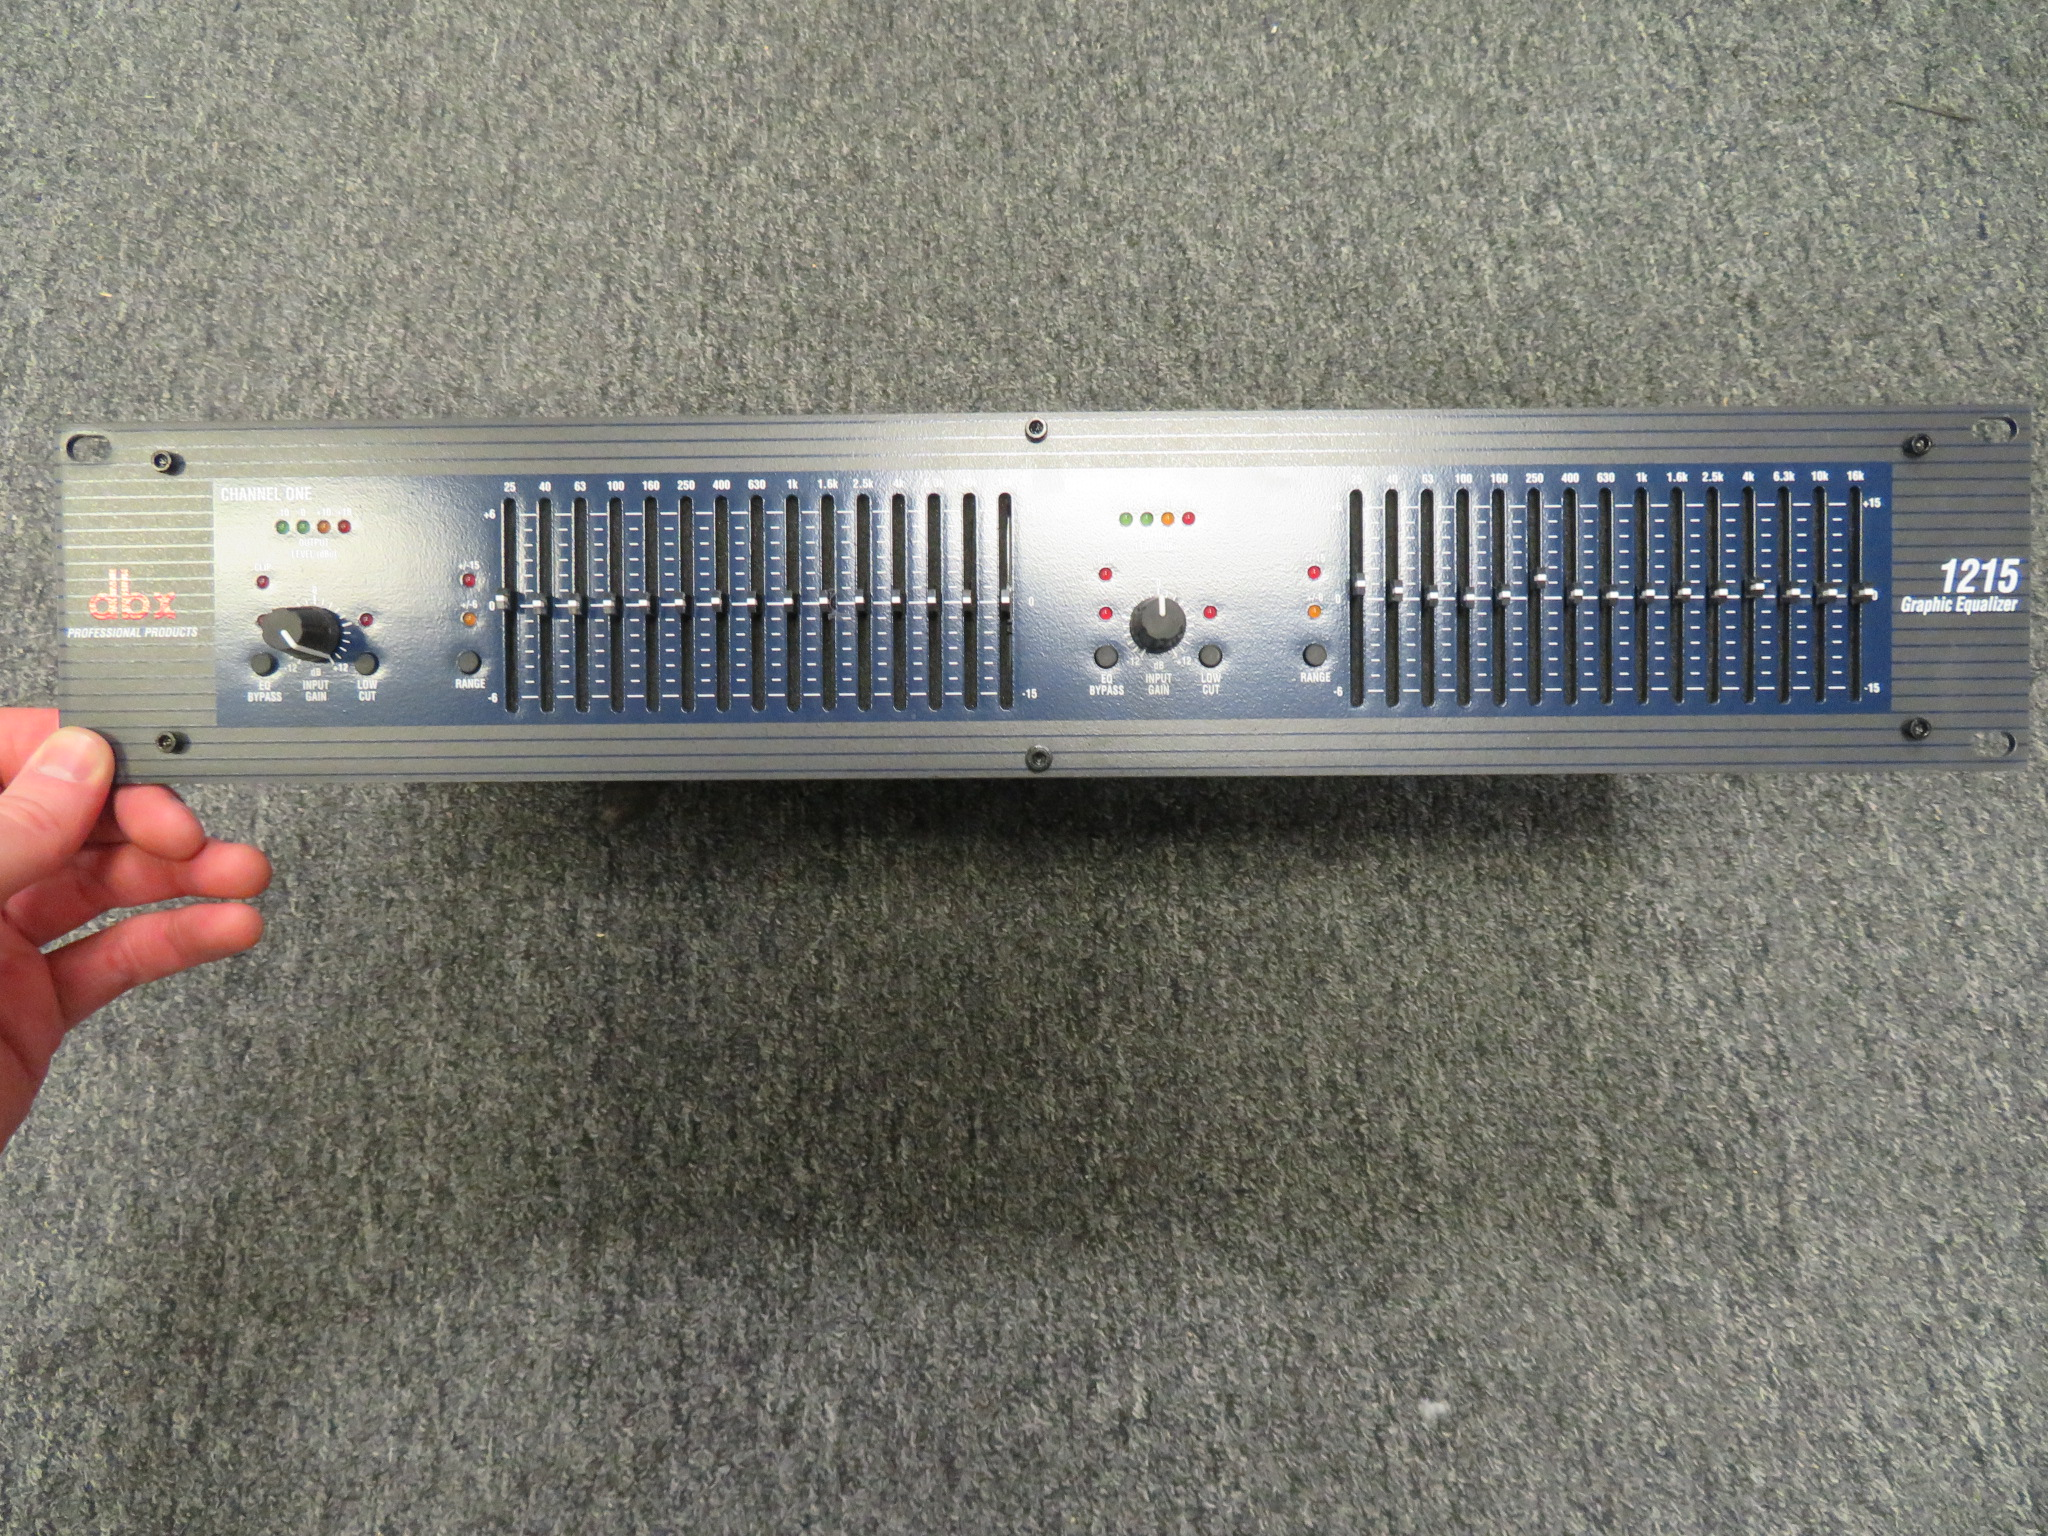 DBX - 1215 GRAPHIC EQUALIZER